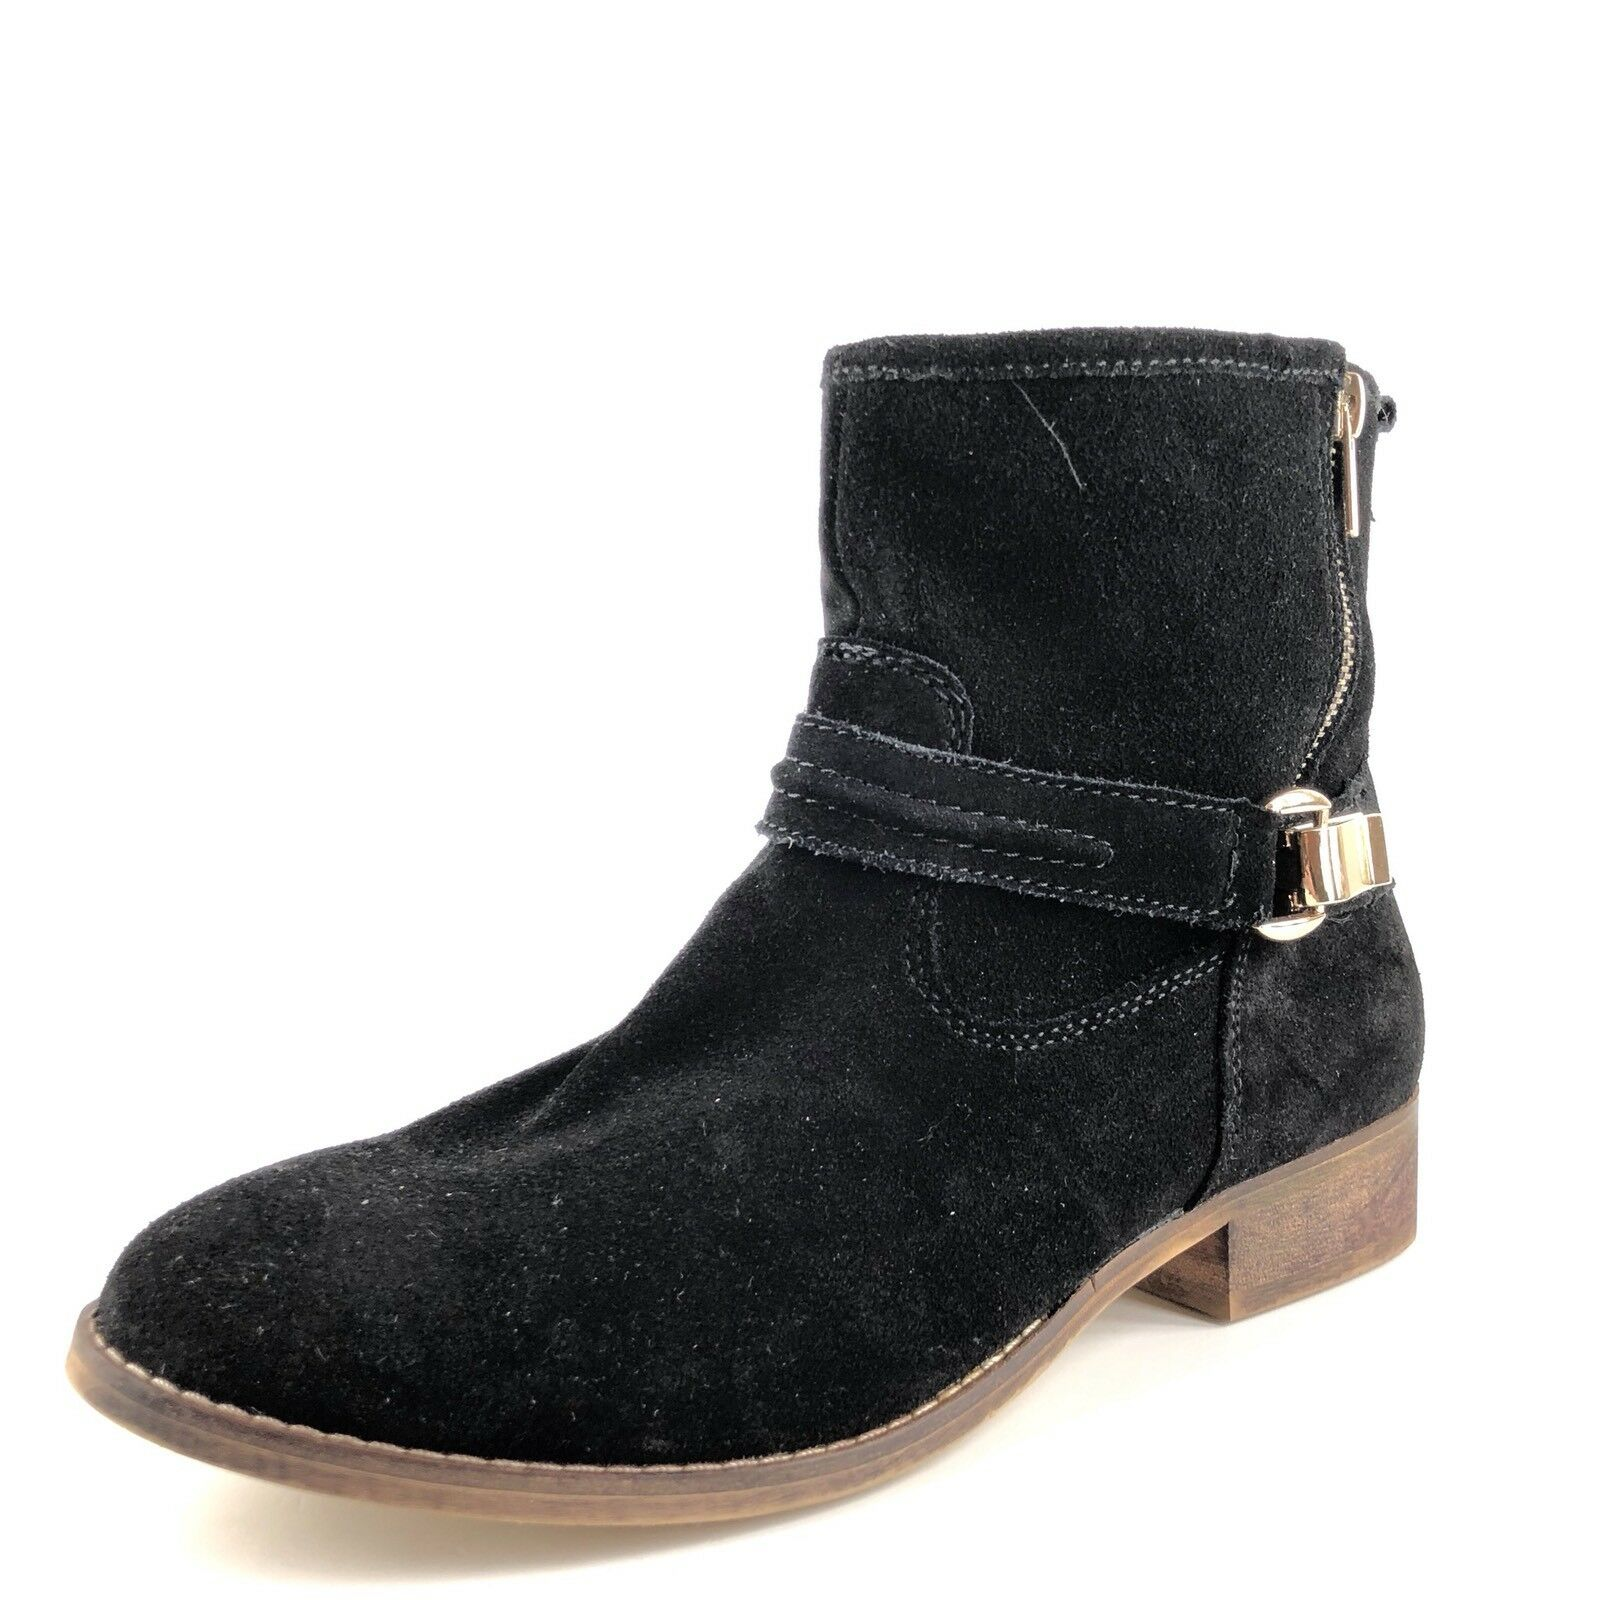 Steve Madden Truthh Black Suede Suede Suede Ankle Boots Womens Size 8.5 M  8debdd